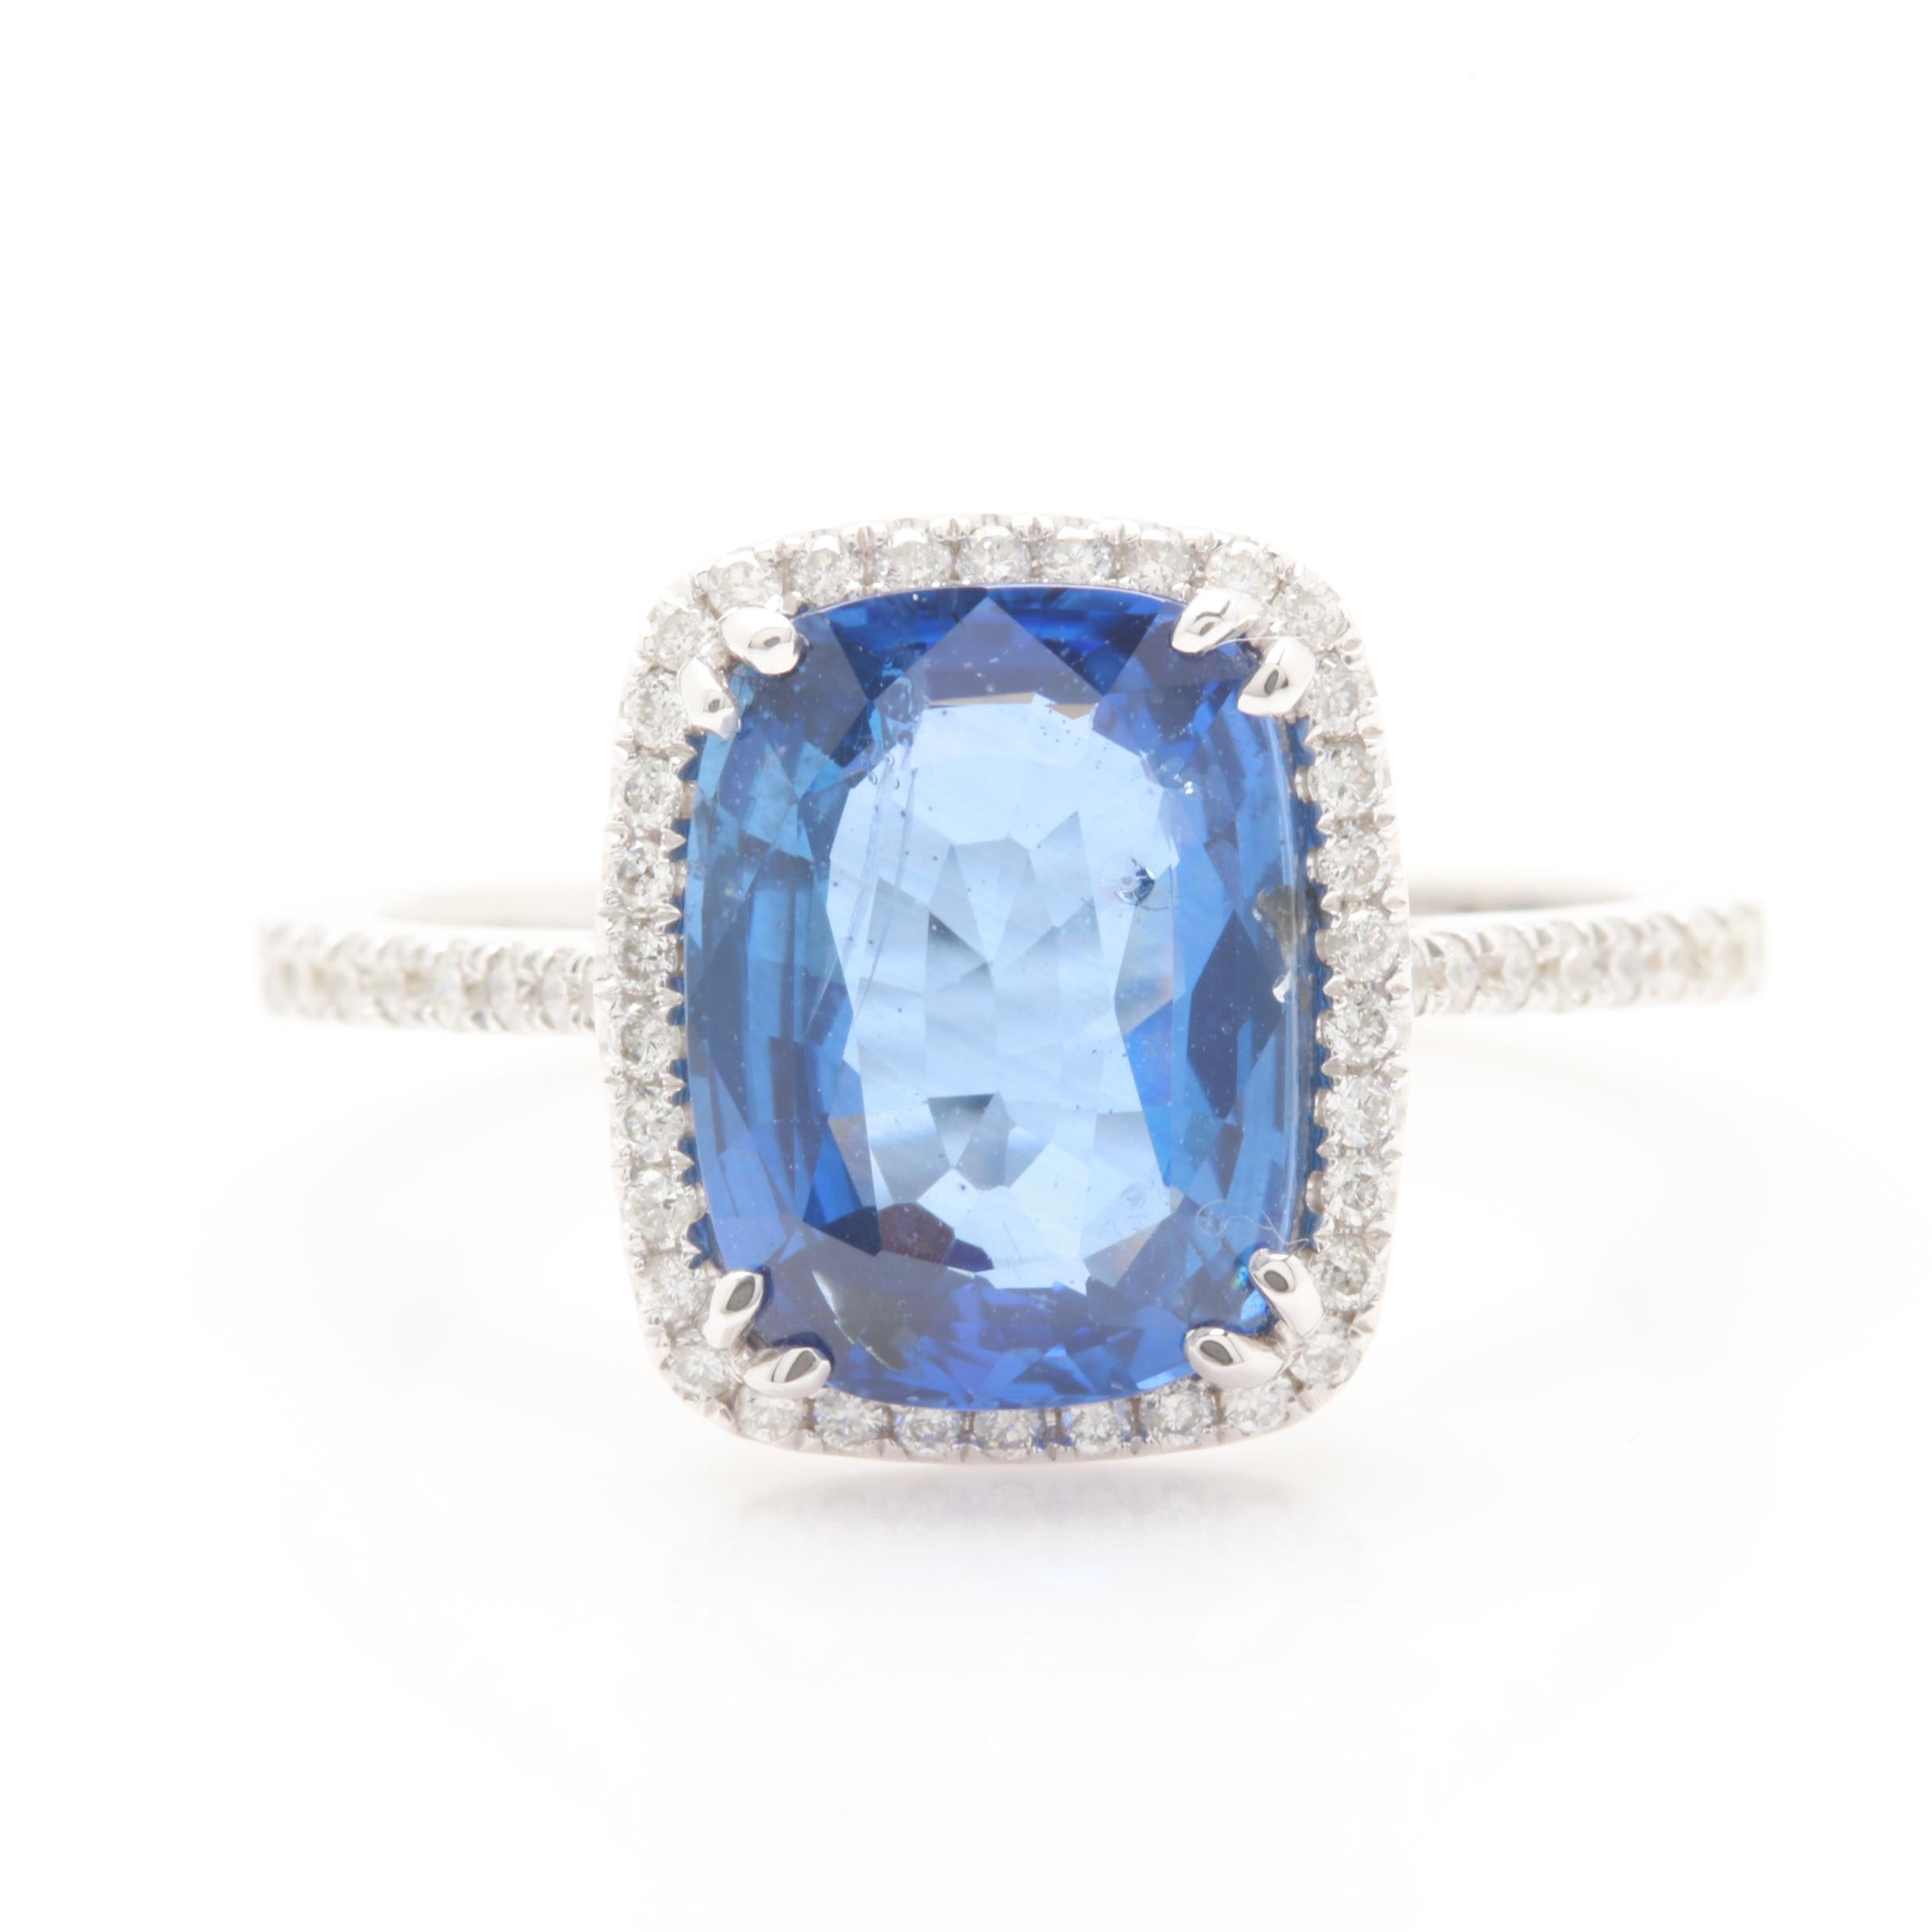 14K White Gold 3.02 CT Blue Sapphire and Diamond Ring